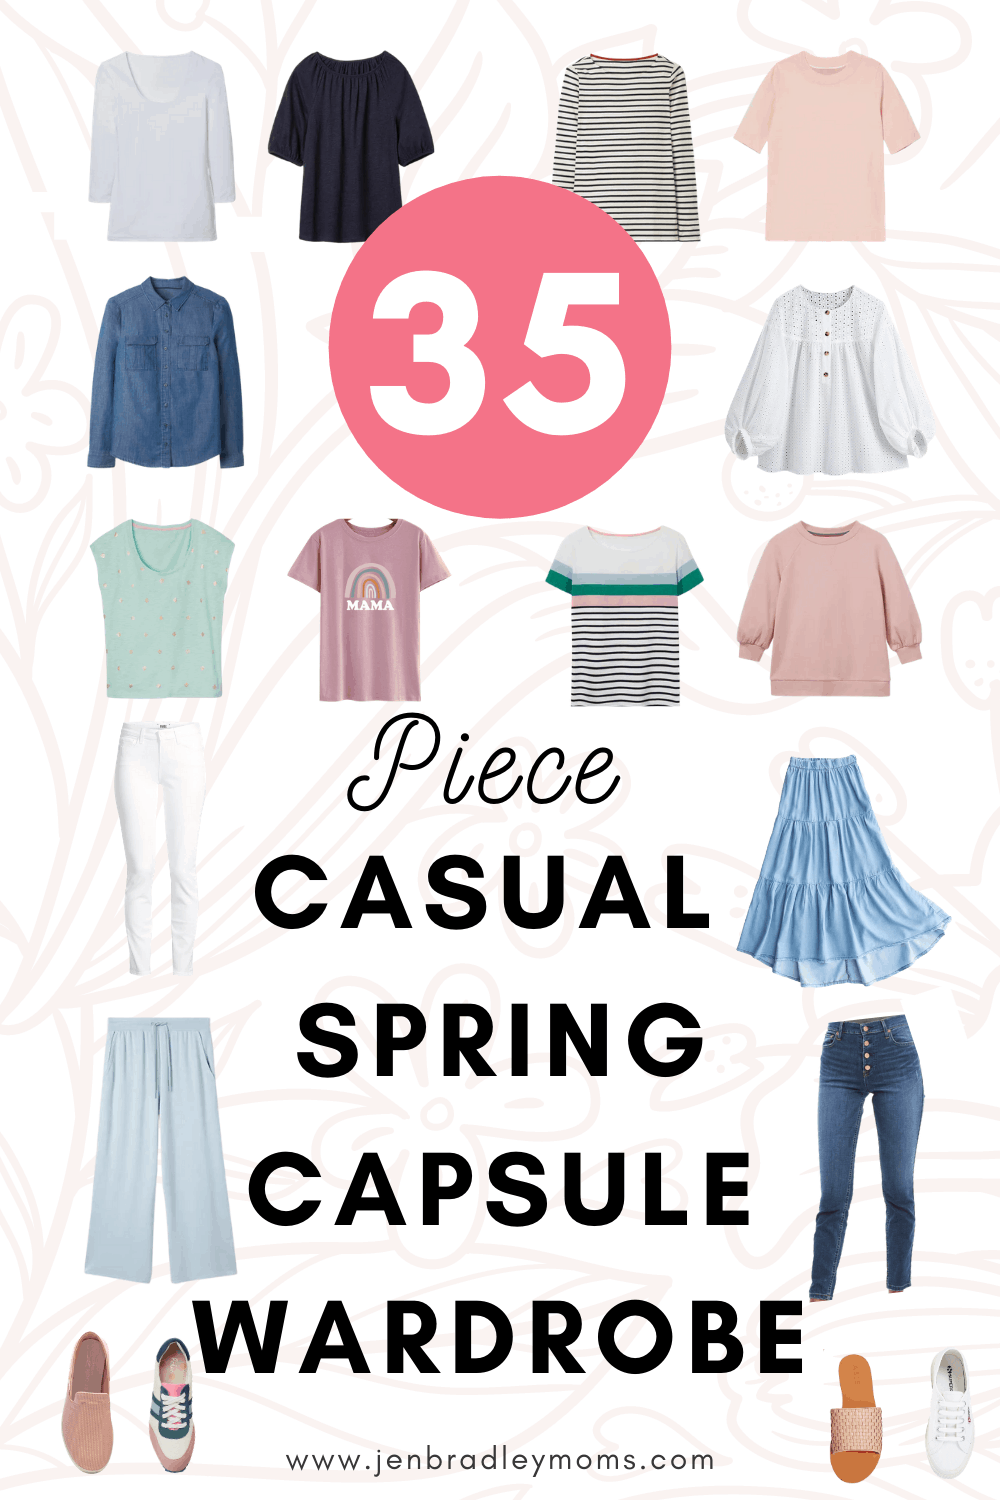 Spring Capsule Wardrobe: 35 Amazing Pieces You Need in Your Closet